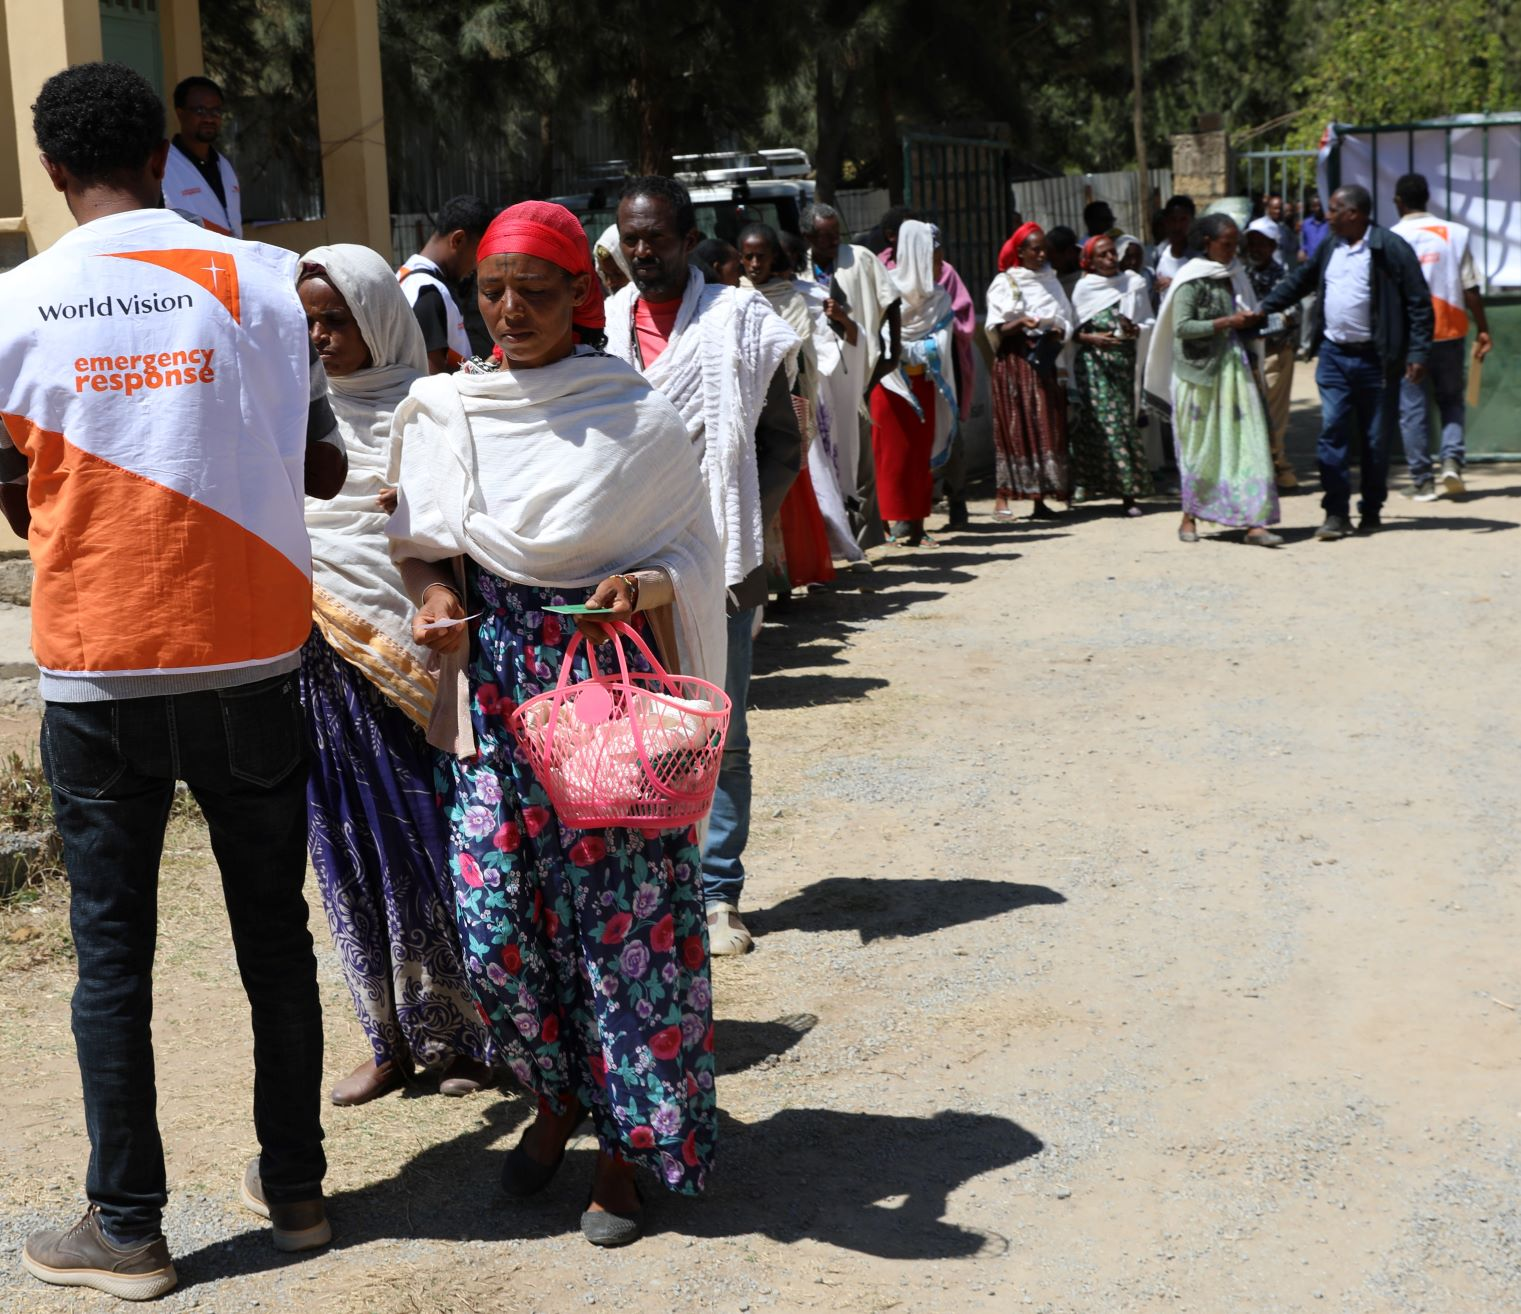 Tigray emergency respose, cash assistance